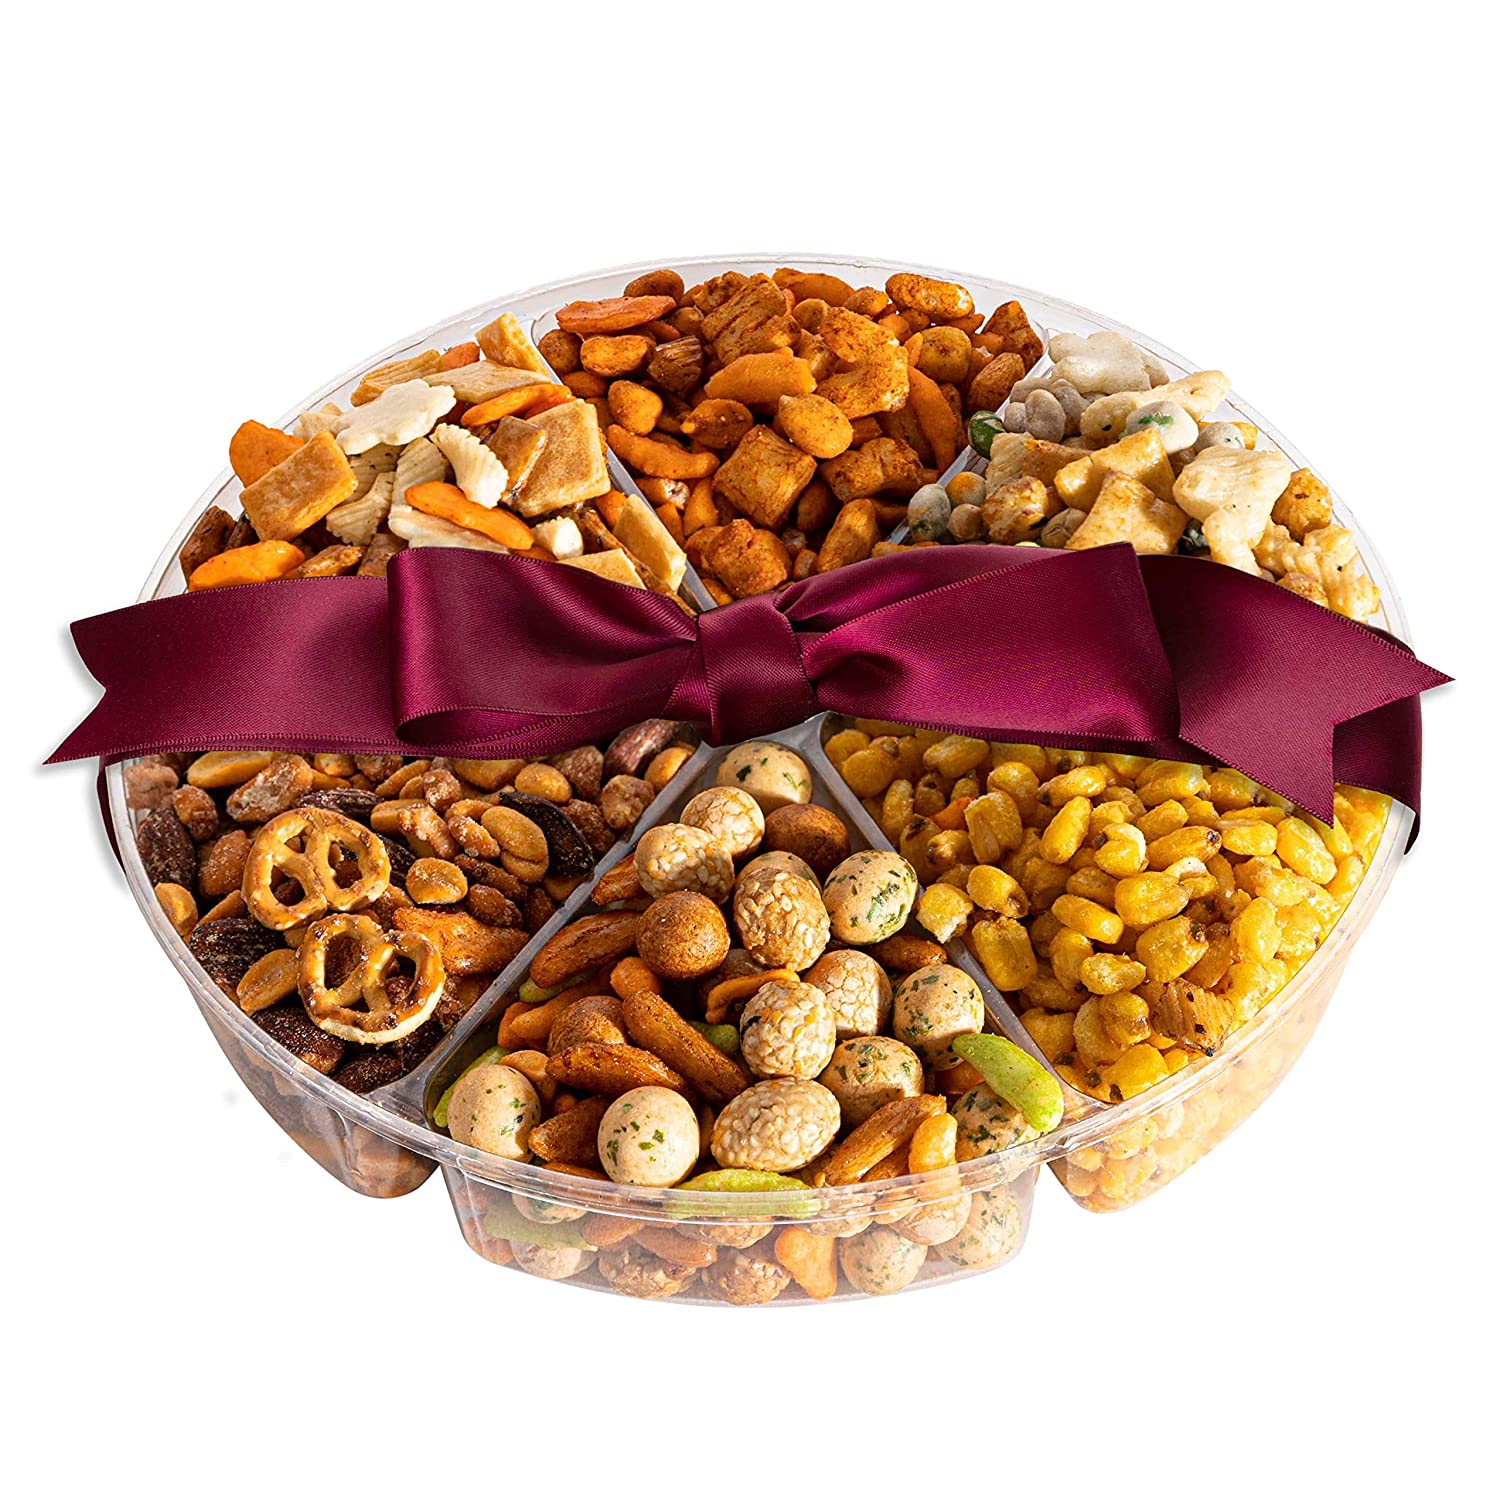 Simple Nuts Holiday Gift Baskets | Assorted Nuts Care Package, Ultra Fresh Nuts, Never Stale | Gourmet Food Snack Gift for Holidays, Christmas, Get Well, New Year's & More | Fast, Secure Shipping